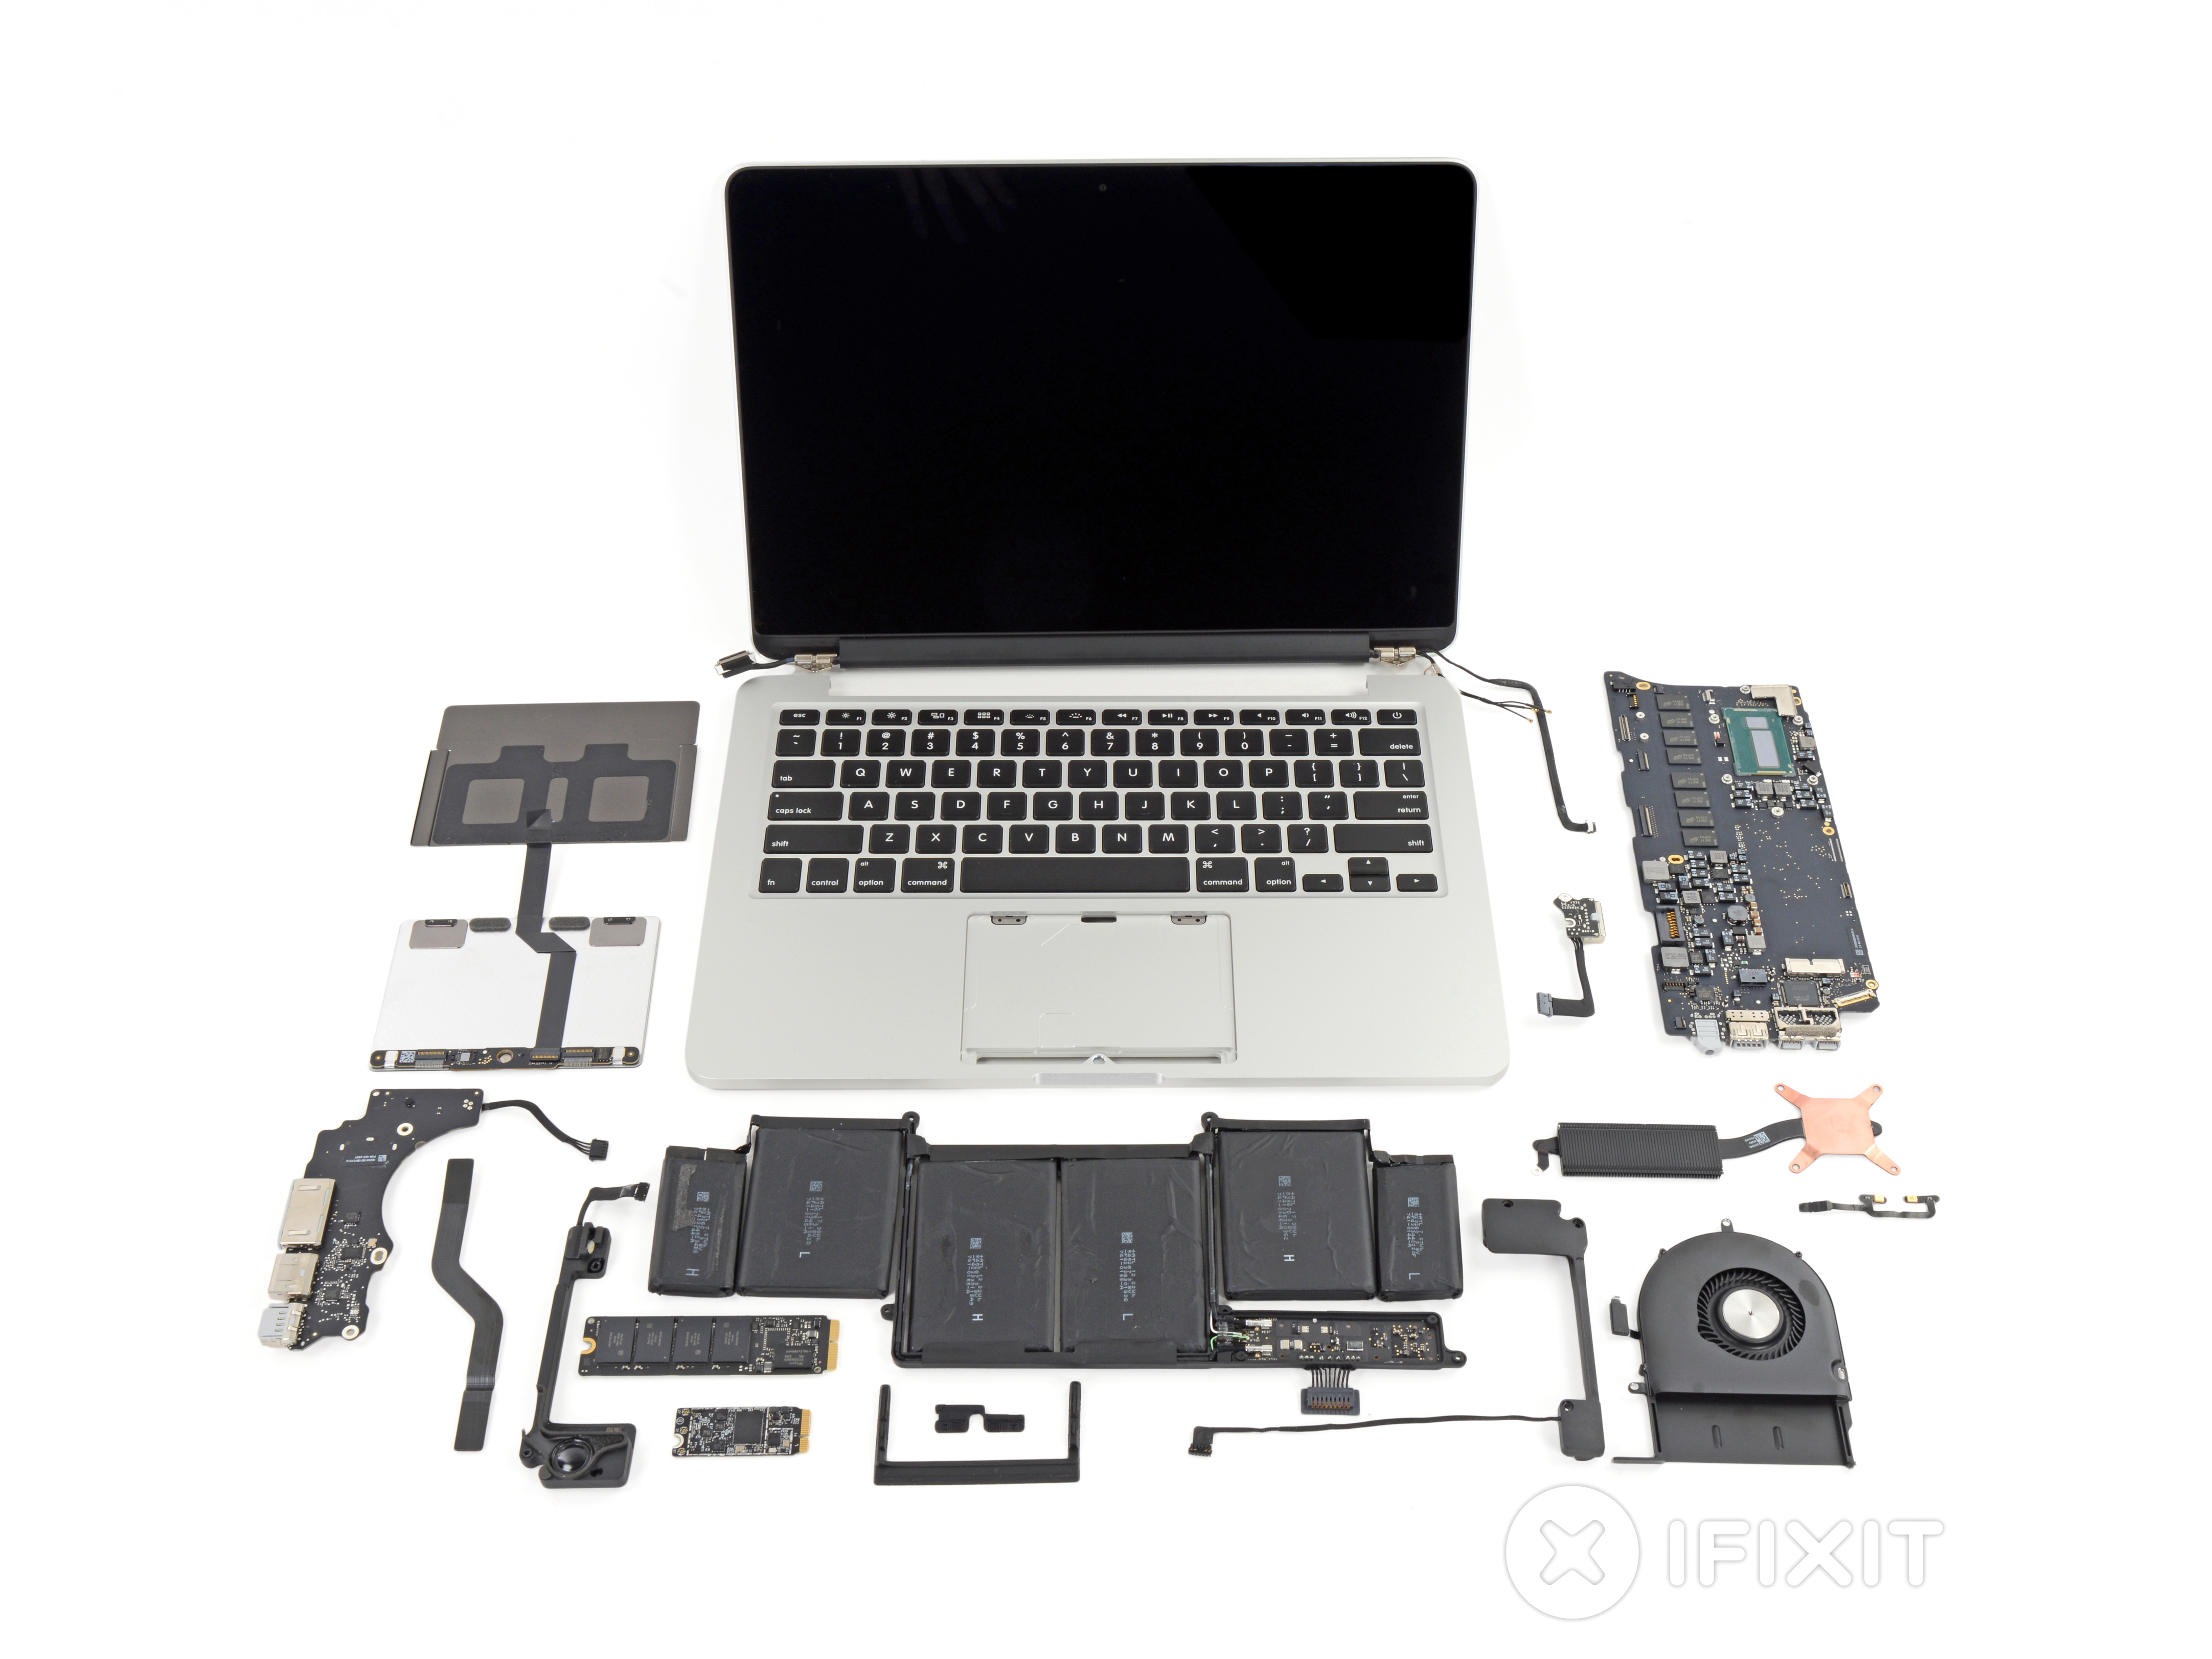 Macbook Pro 13 Retina Display Late 2013 Teardown Ifixit Swith For Diagram October